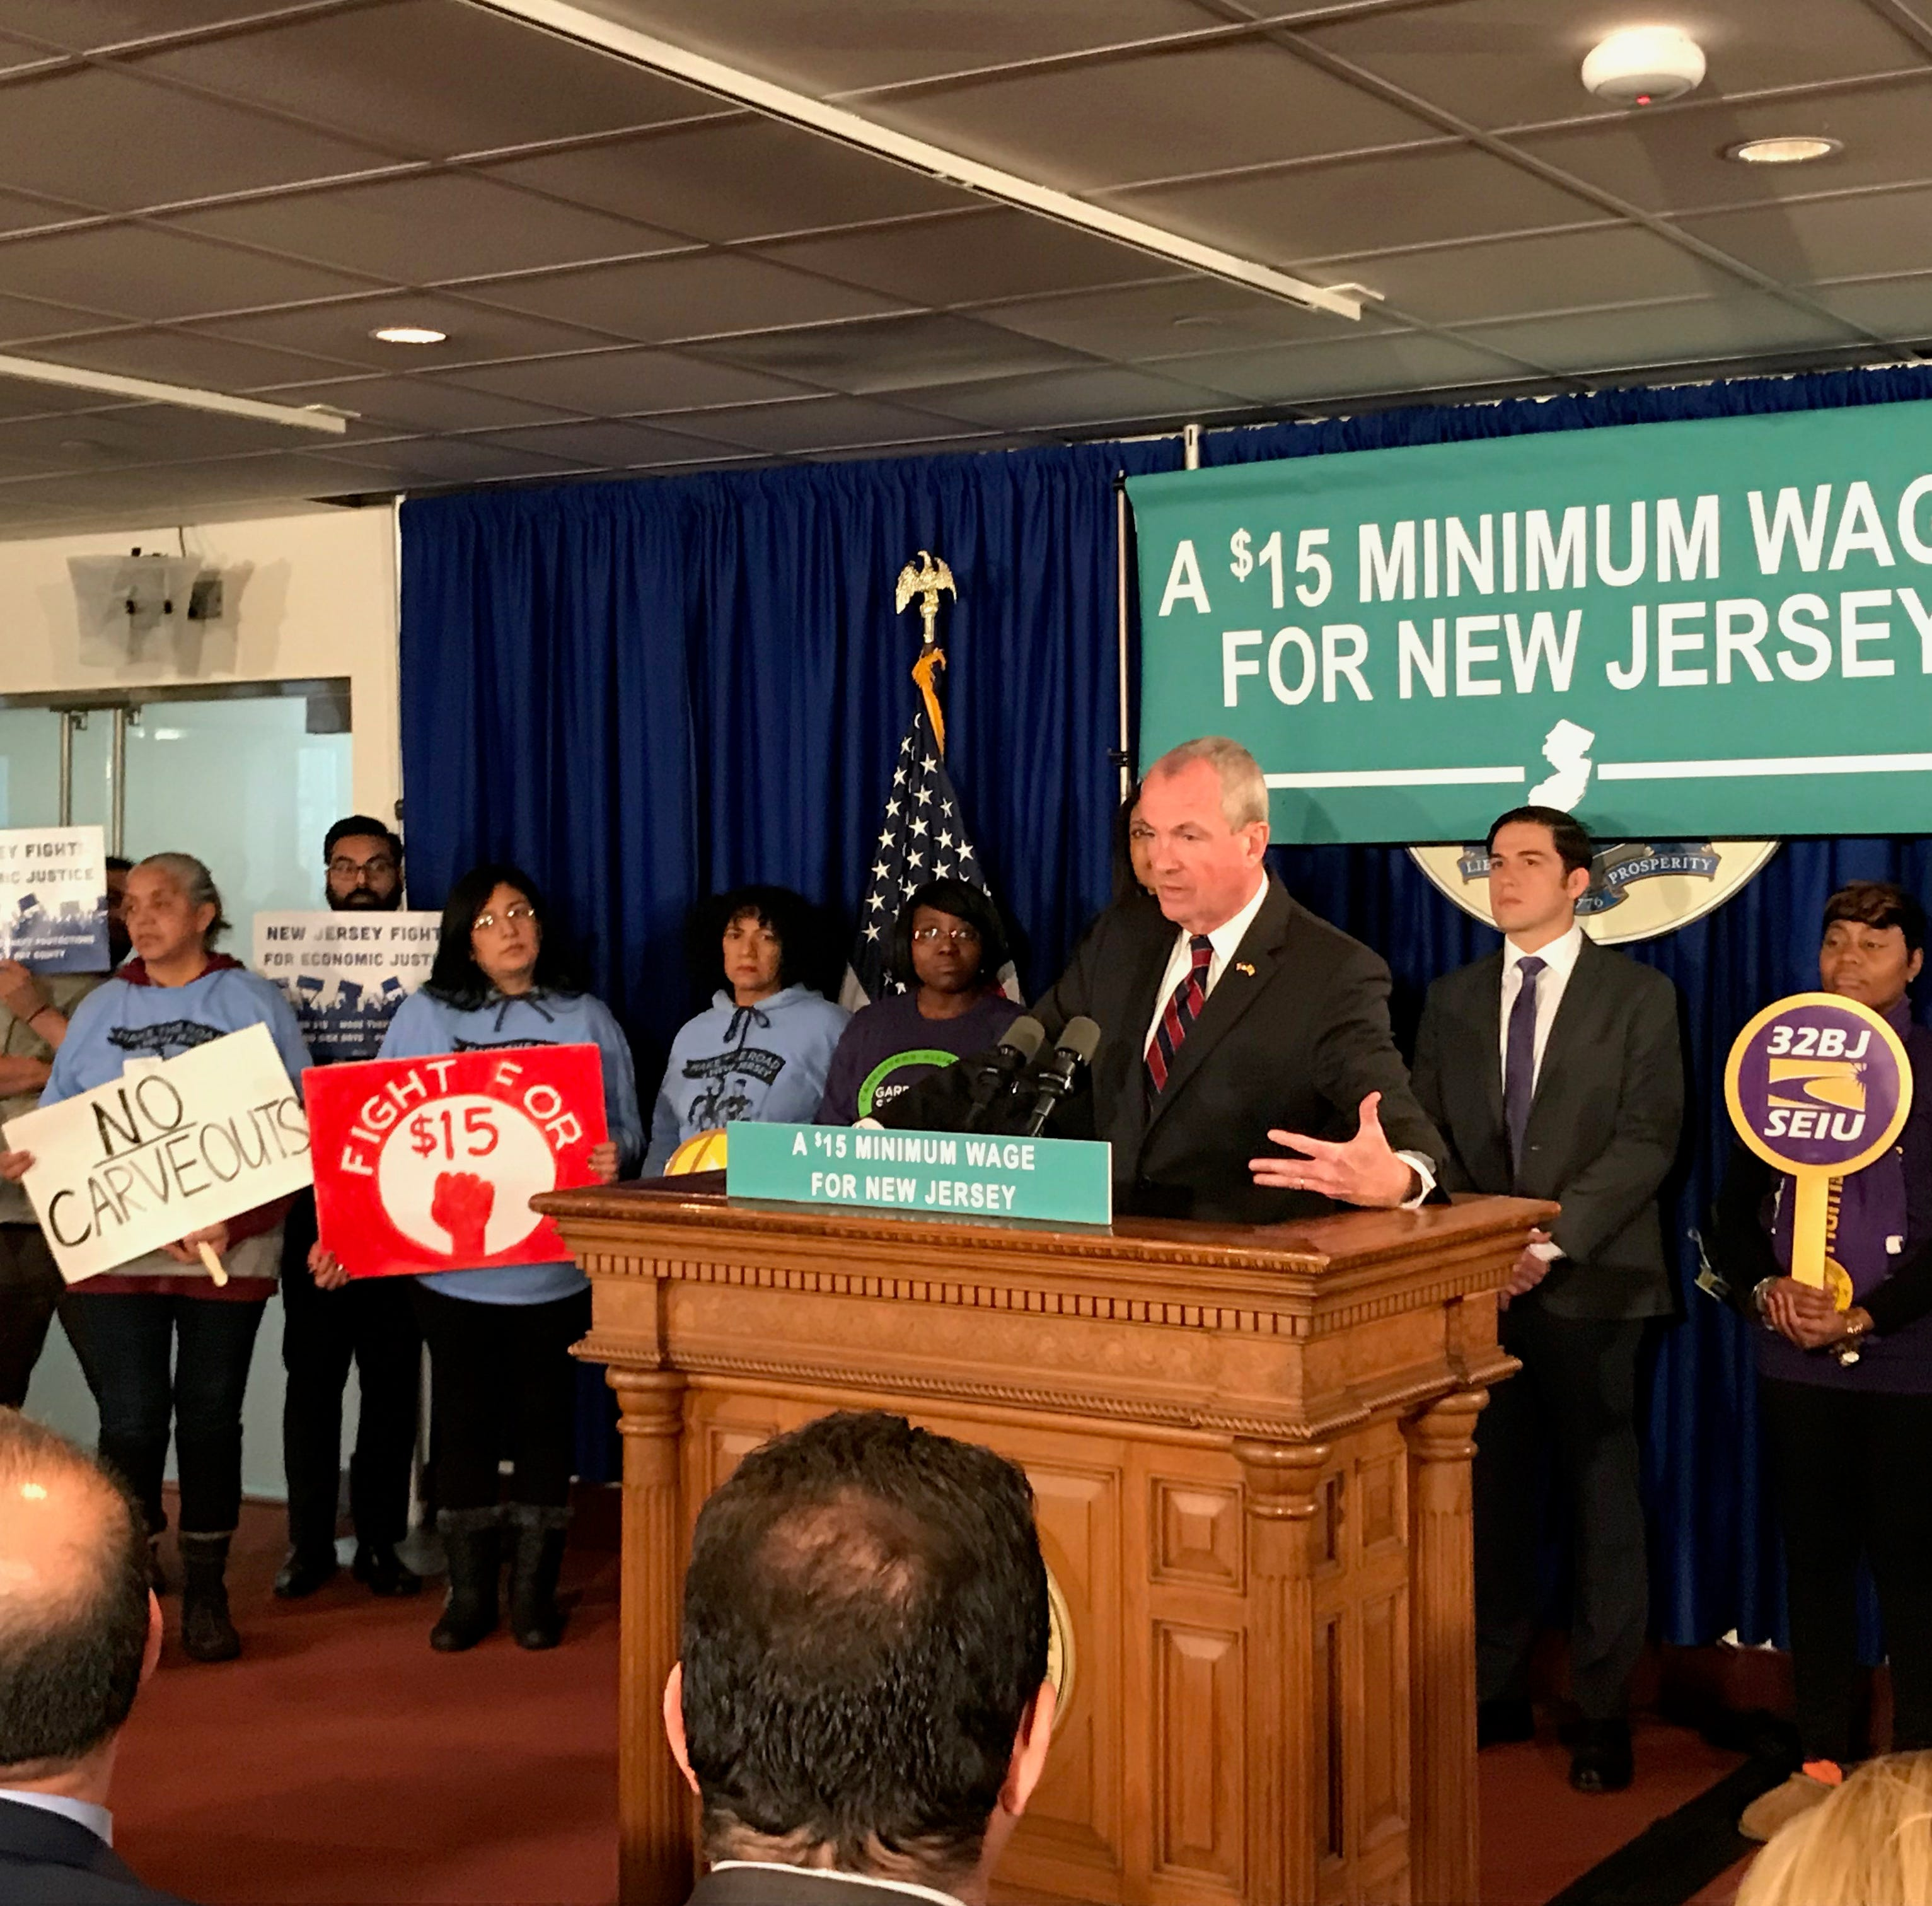 Deal reached to raise NJ's minimum wage to $15 an hour